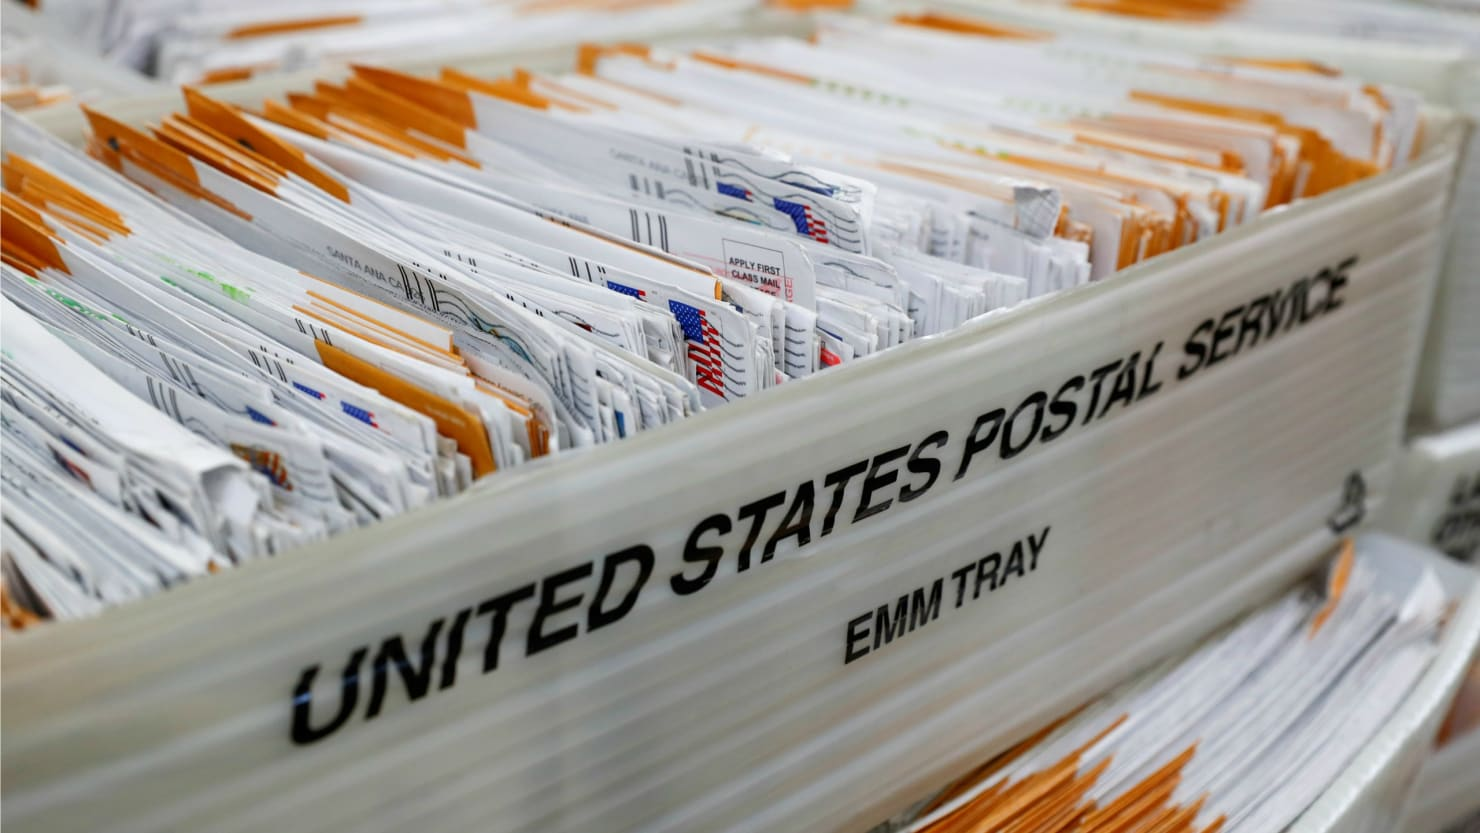 Report: Vote-by-Mail Ballots Sitting in Florida Distribution Center